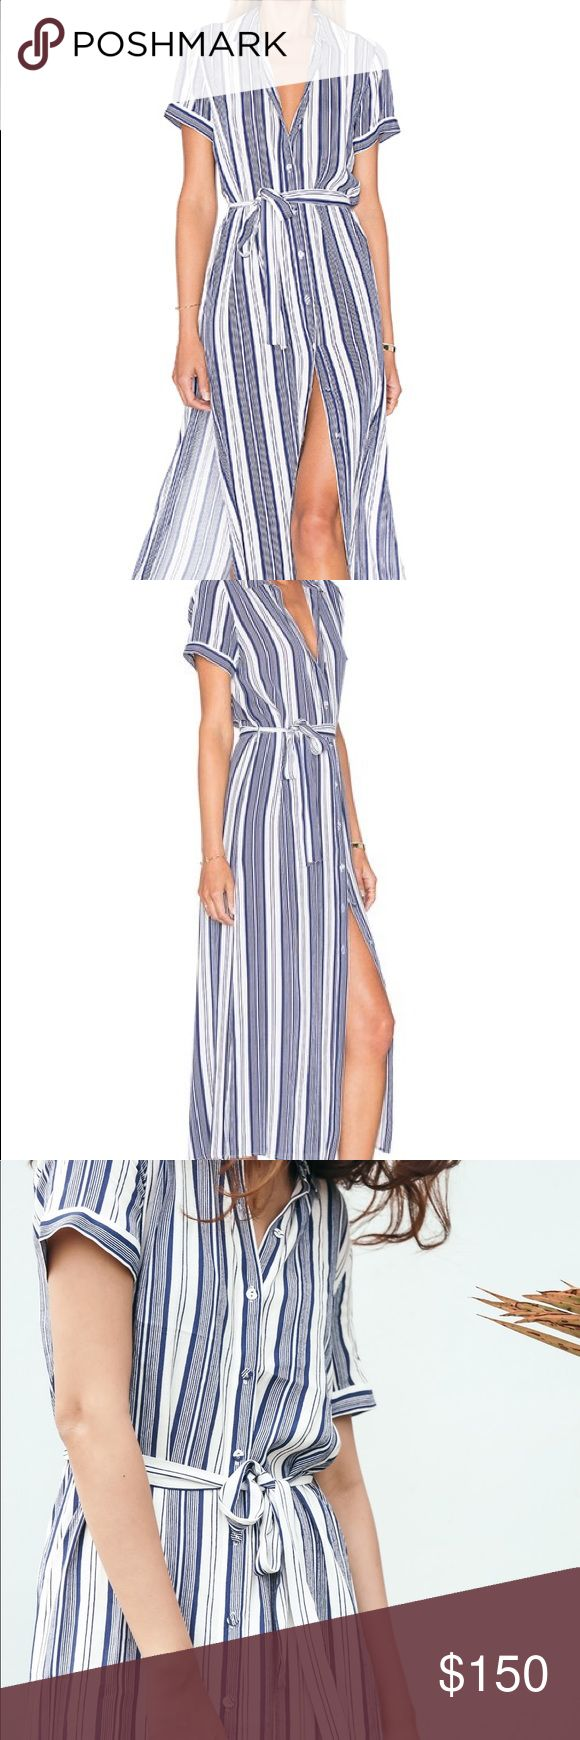 L'academie Maxi Shirt Dress Striped sailor maxi dress that does double duty as an eye-catching extra-long top over shorts. Hidden front button closure Cuffed short sleeves Tie waist Side seam slits Viscose blend Dry clean only.  True to size. XS=0-2, S=4-6, M=8-10, L=12-14. L'academie Dresses Maxi